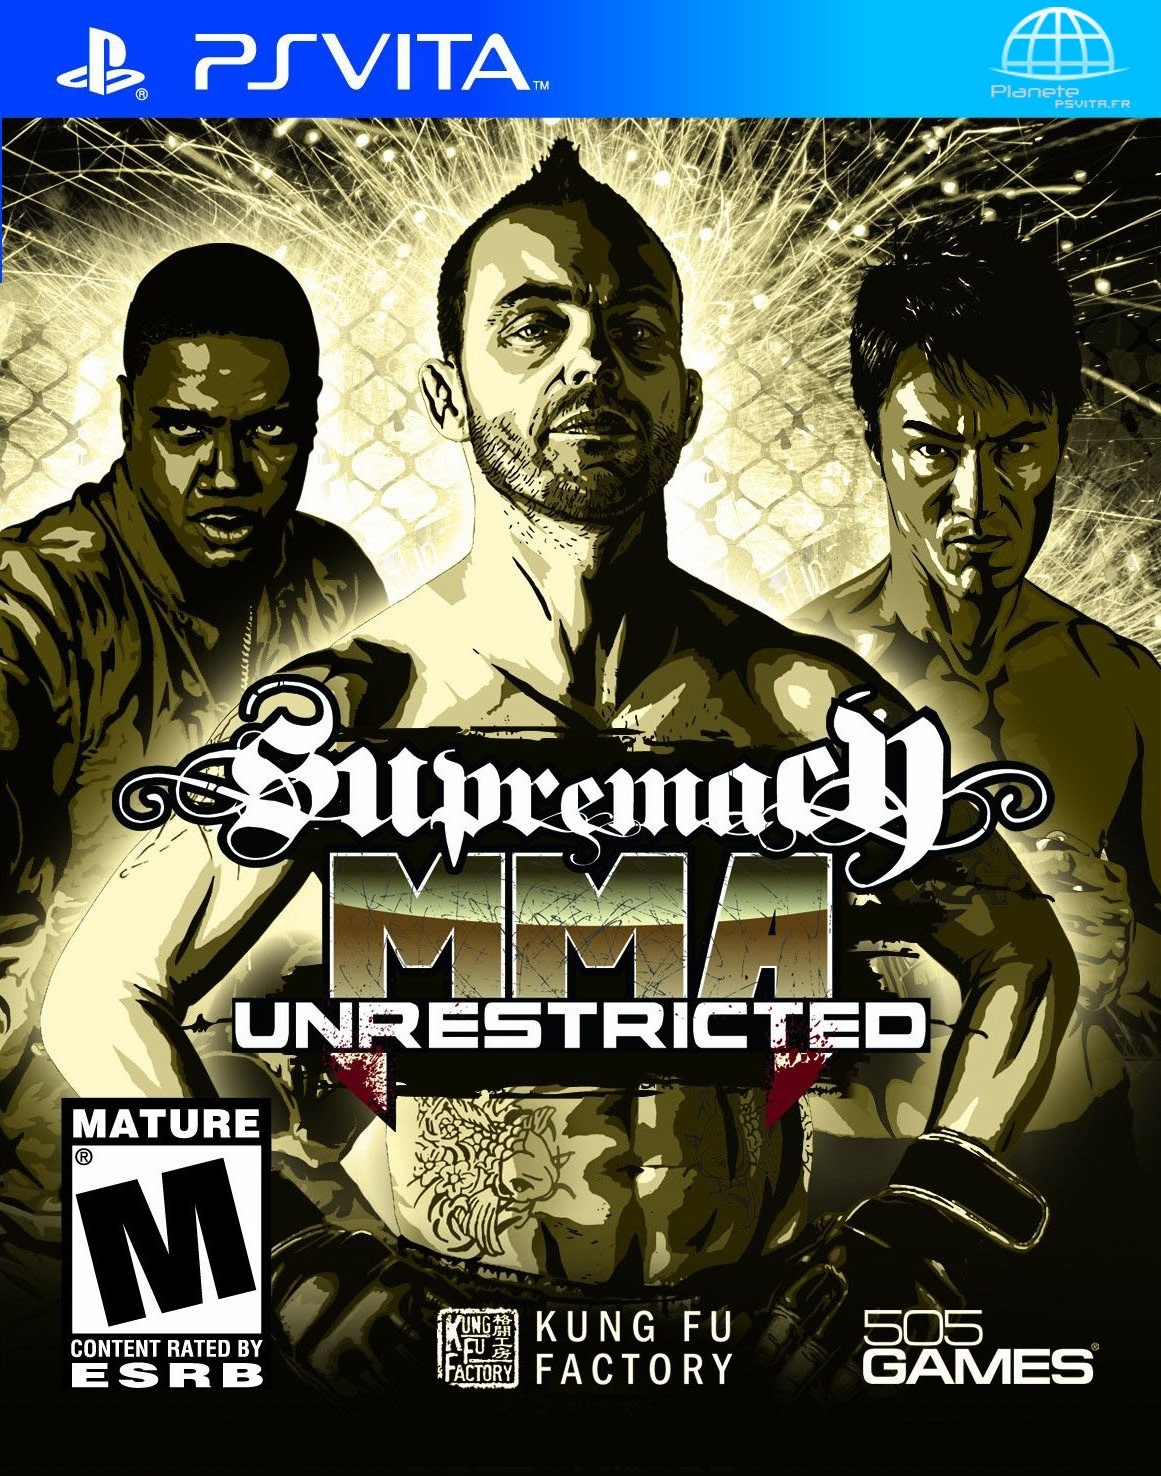 Supremacy Mma 2 Related Keywords & Suggestions - Supremacy